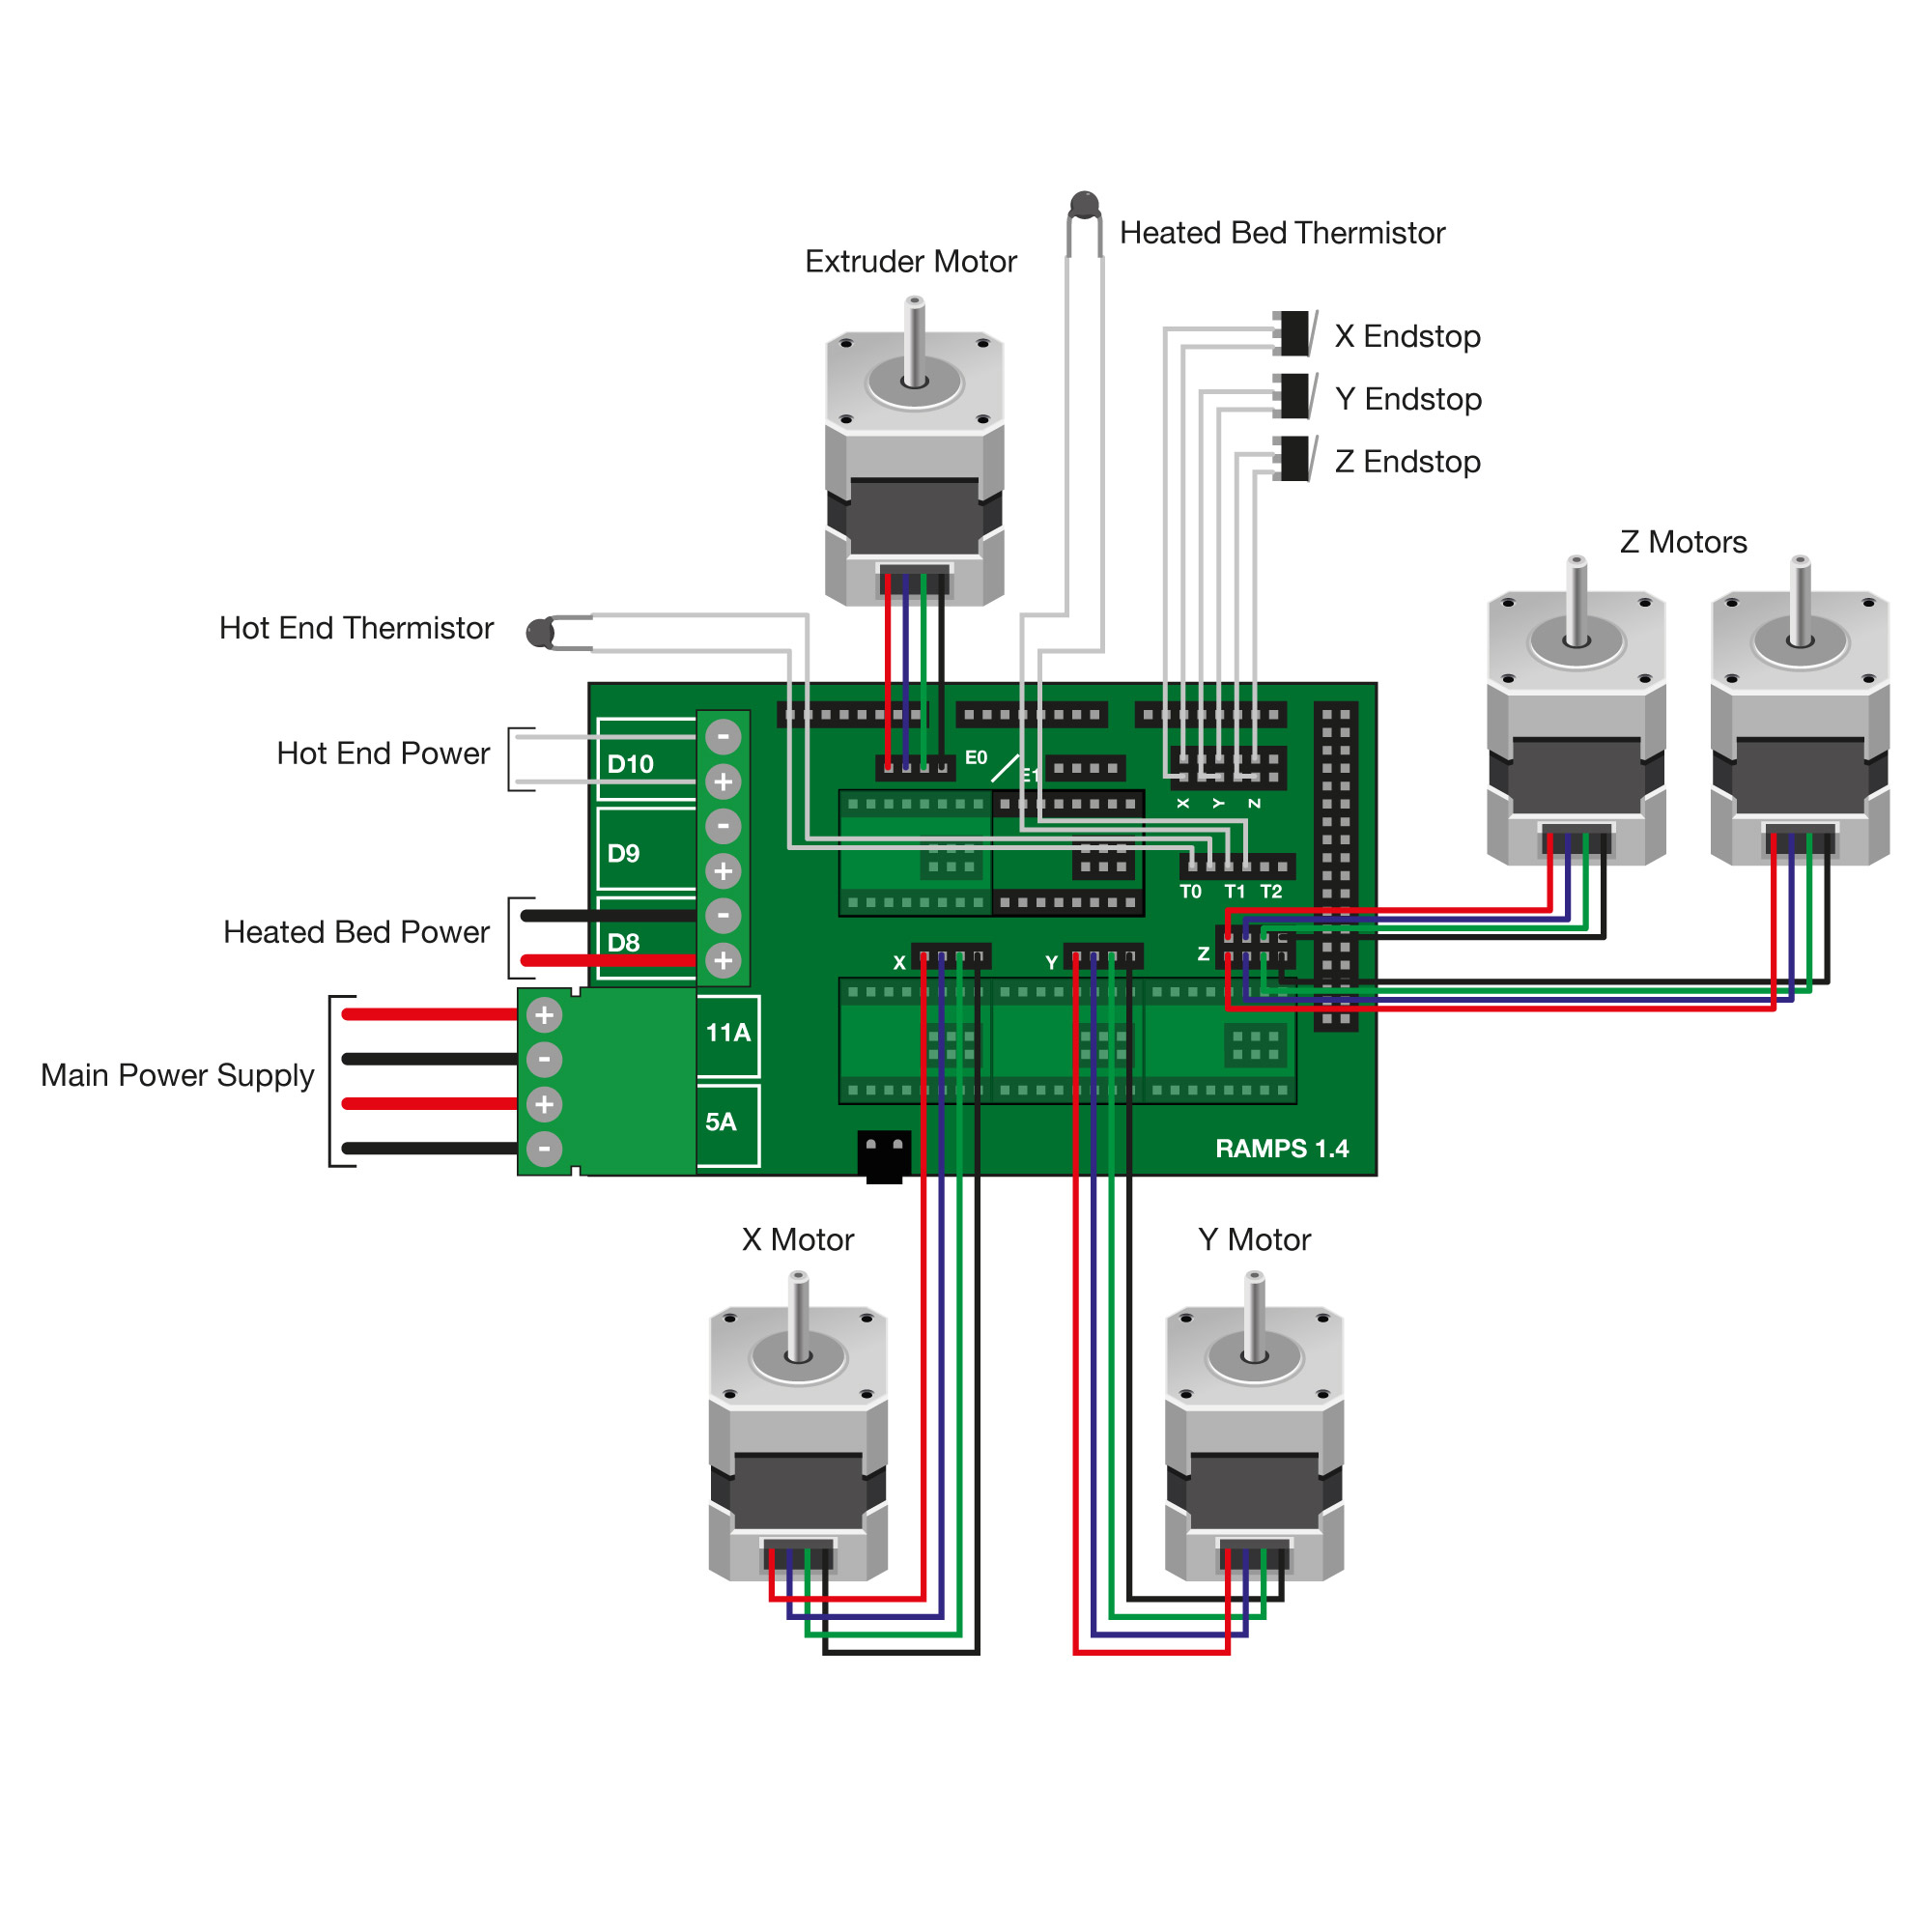 Wiring Ramps Electronics For Reprap Prusa I3 3d Printer Asensar Guide Connection Diagram 1